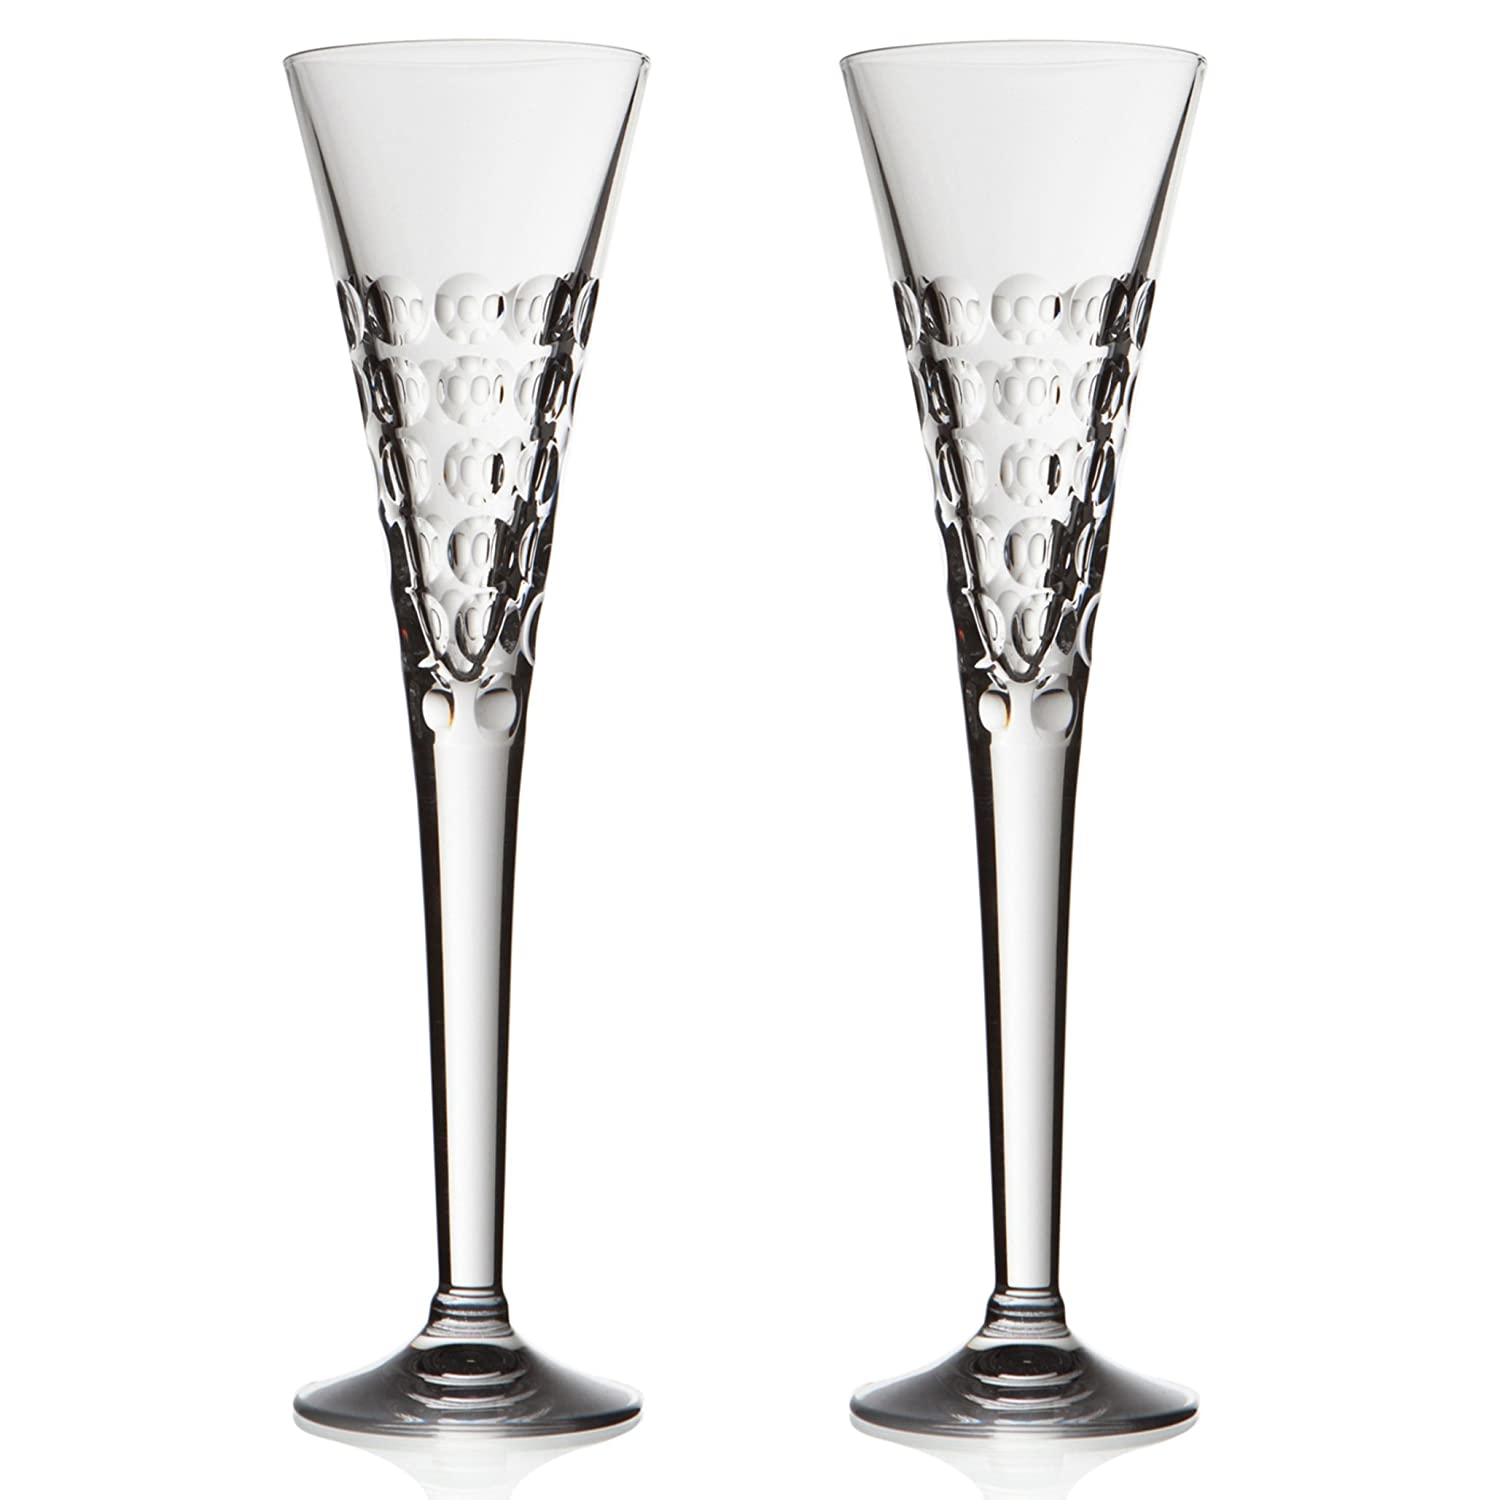 2x Extra Tall, Bubbles Cut Crystal, Champagne Toasting Flutes 17cl RCR Crystal